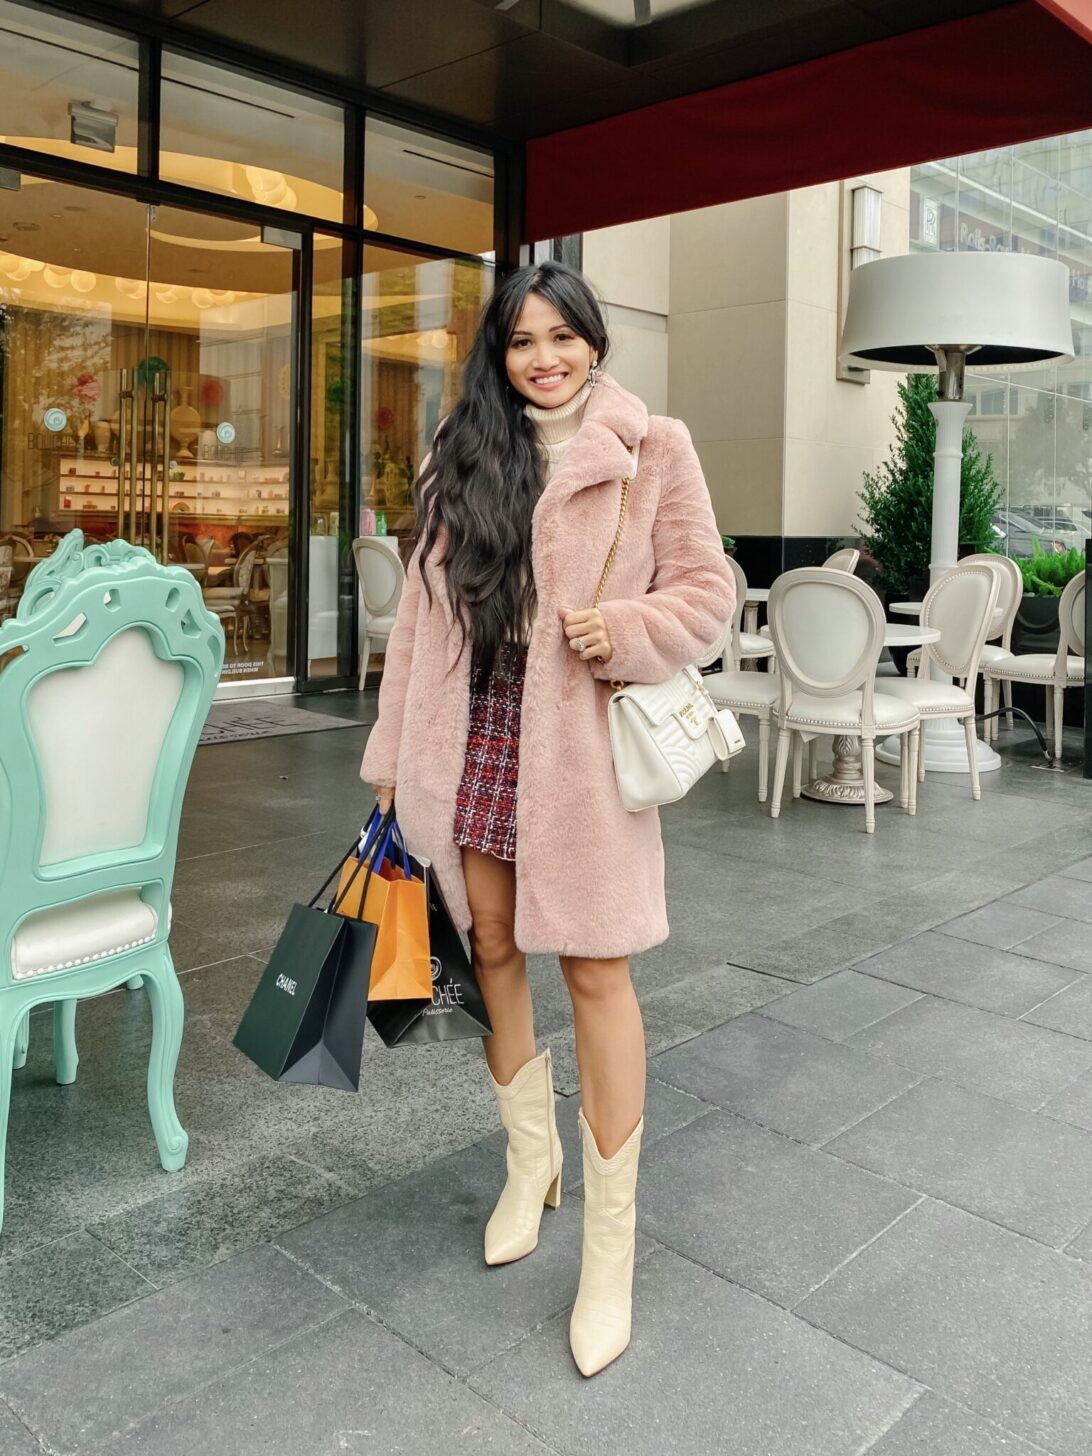 Bouchée Patisserie , pink coat, Prada bag, white boots, tweed skirt, post Oak Hotel, Houston, TX